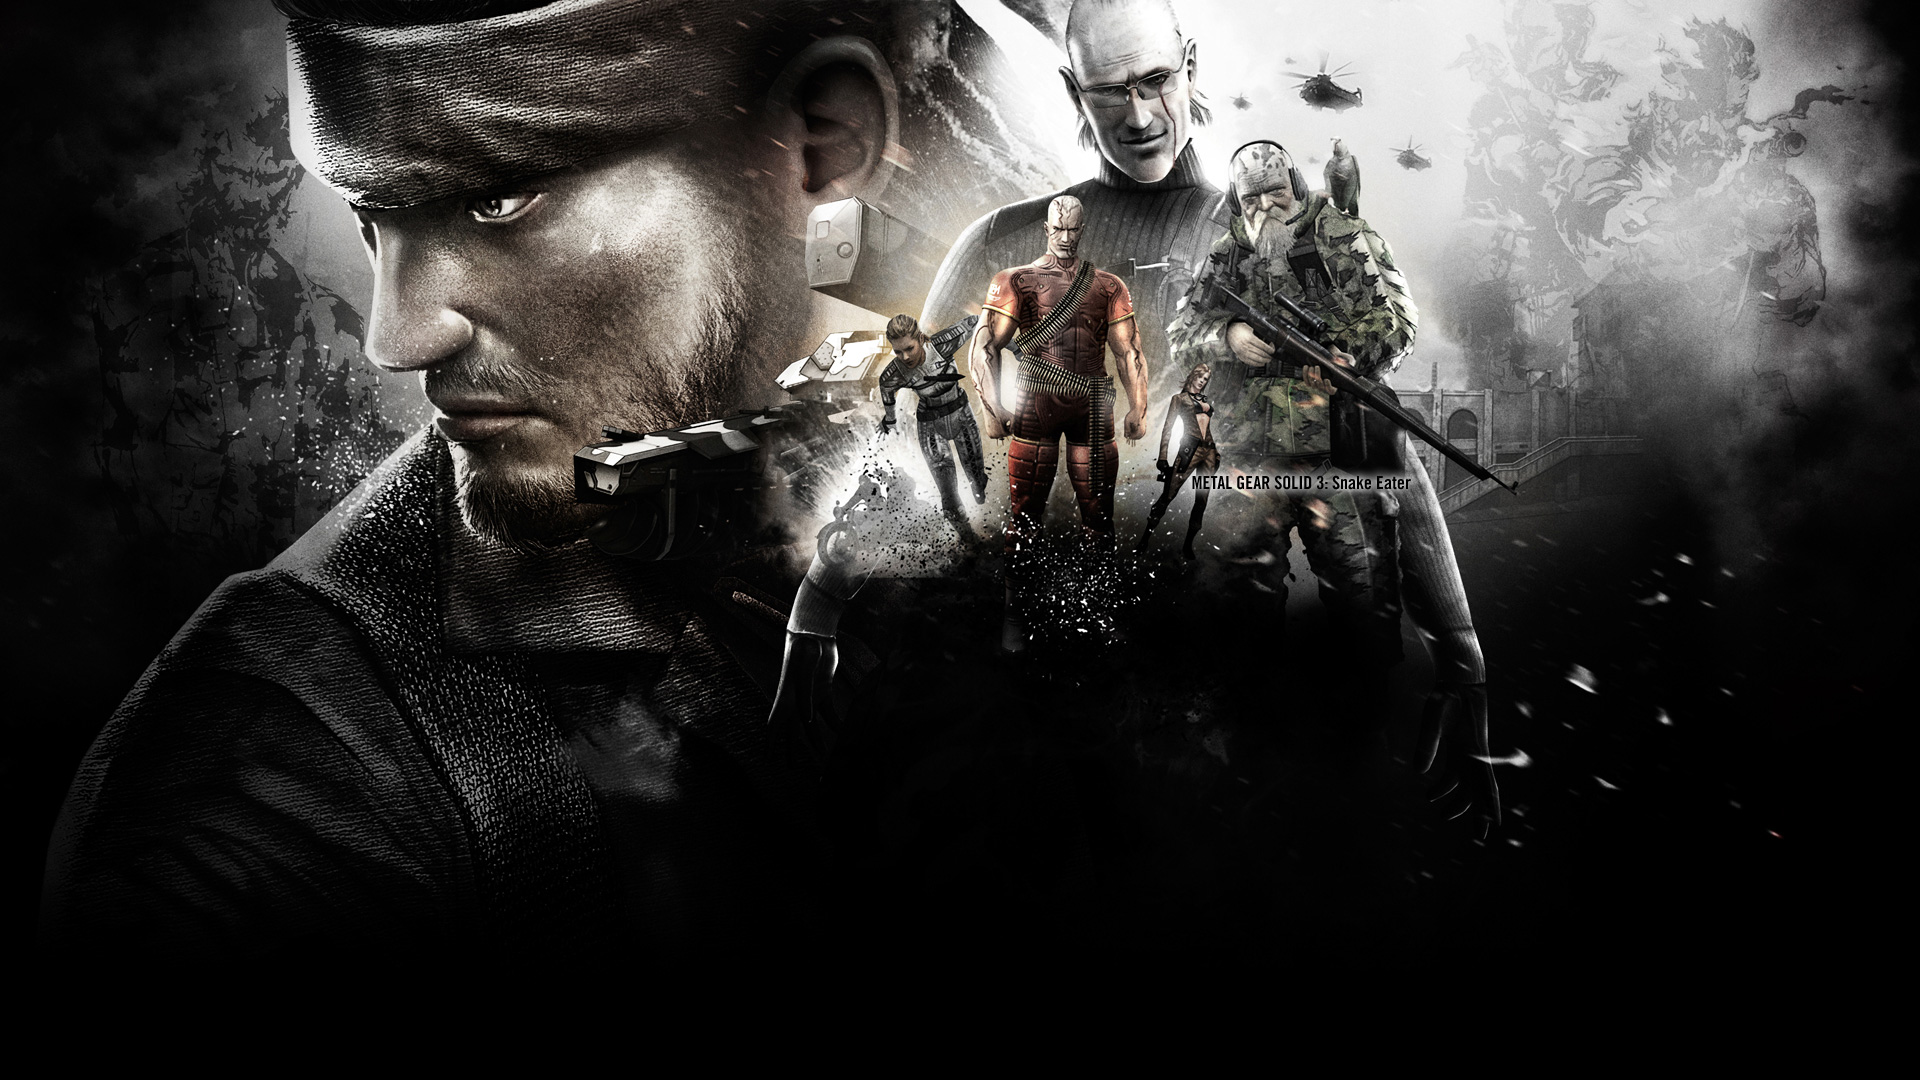 Free Download Metal Gear Wallpaper 1920x1080 Metal Gear Solid Big